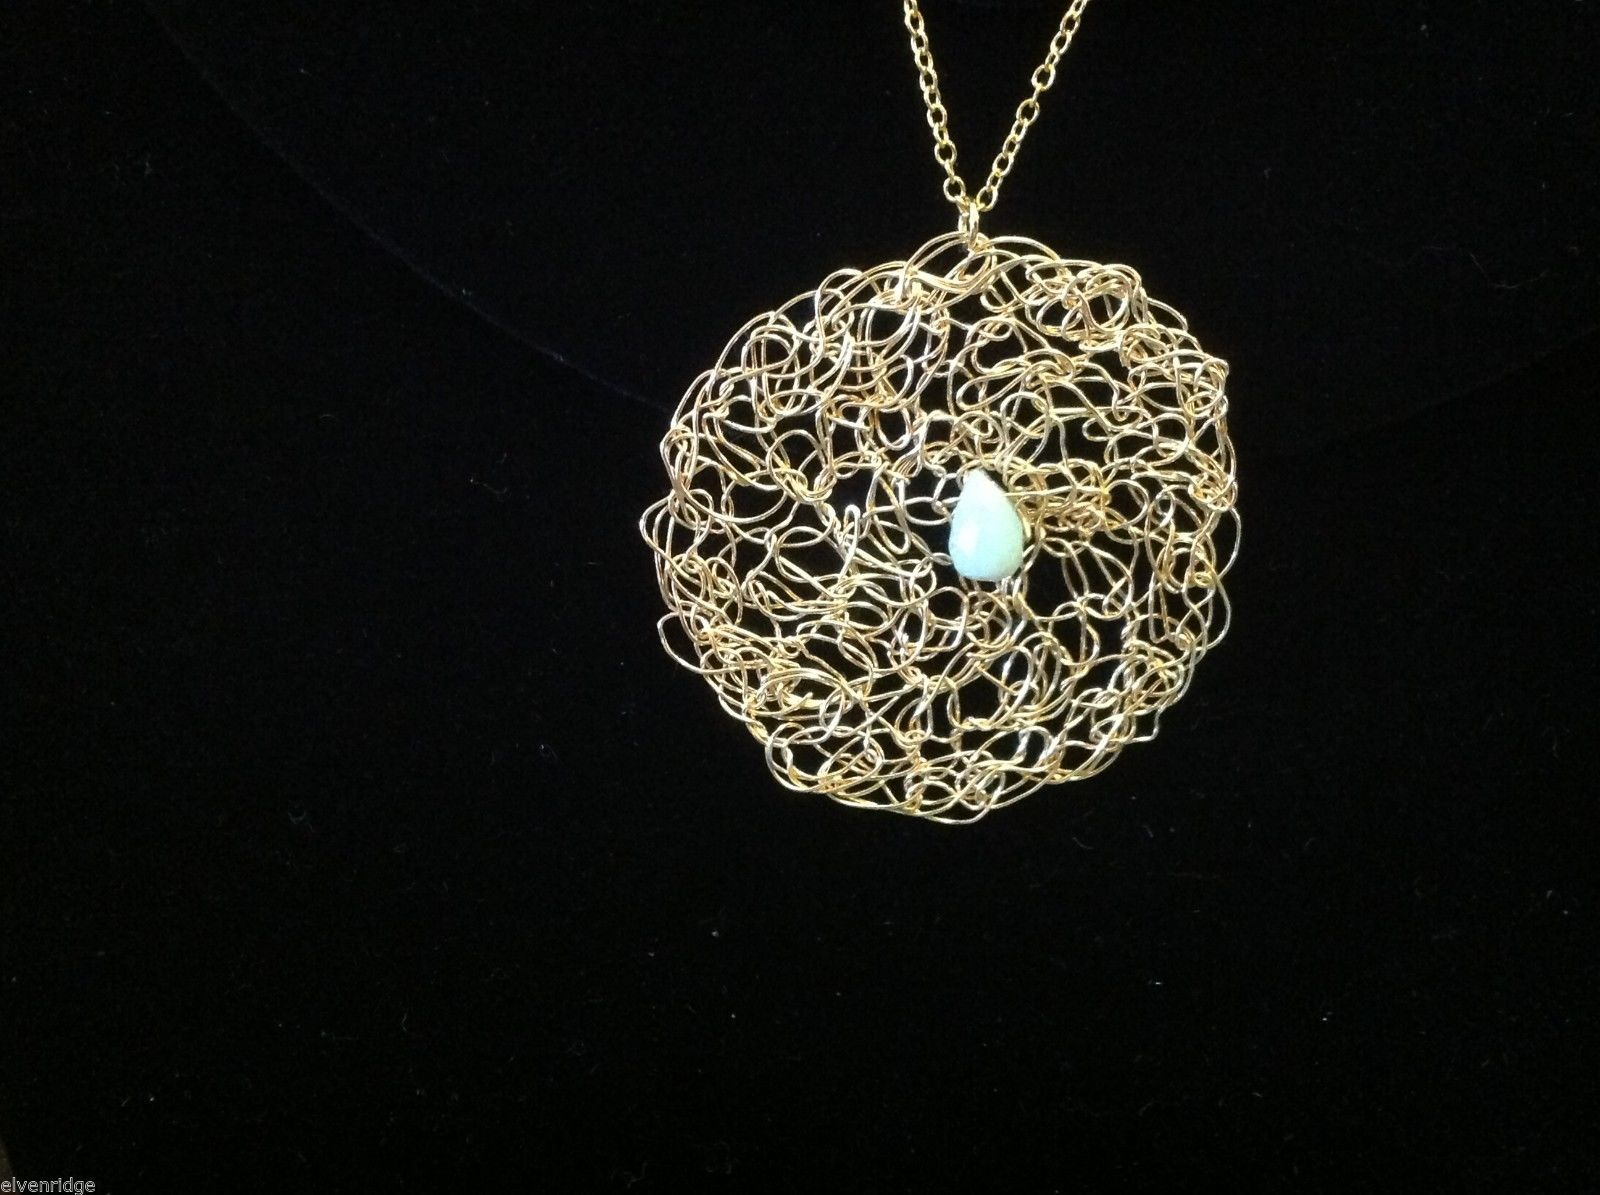 Designer gold necklace pendant with green aventurine cabochon